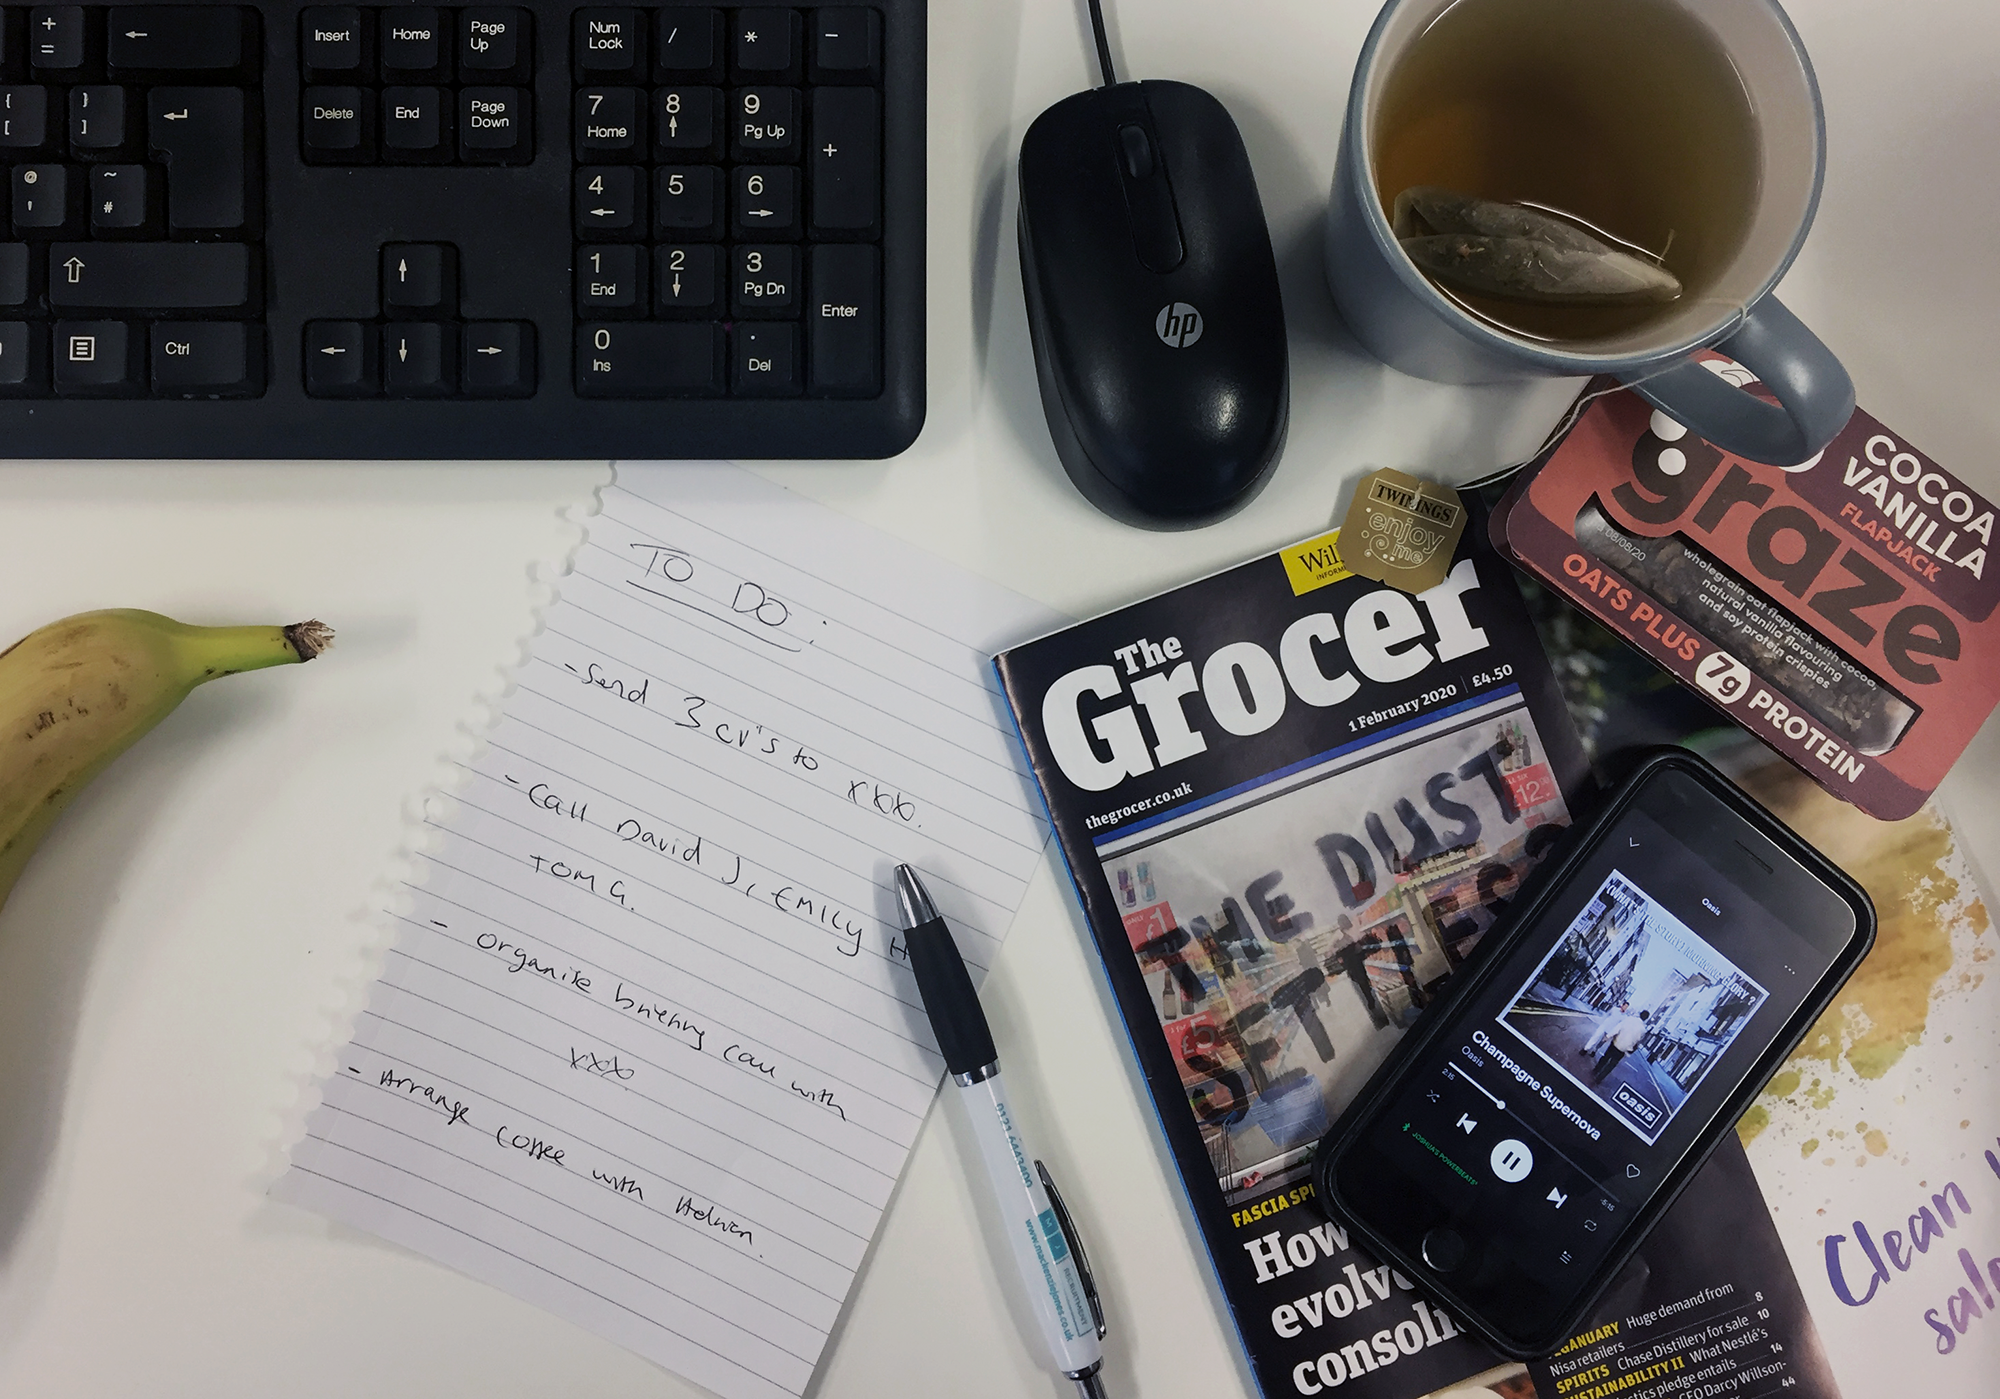 aerial shot of a desk featuring The Grocer Magazine, Twinings tea, graze protein flapjack and phone showing Oasis playing on Spotify